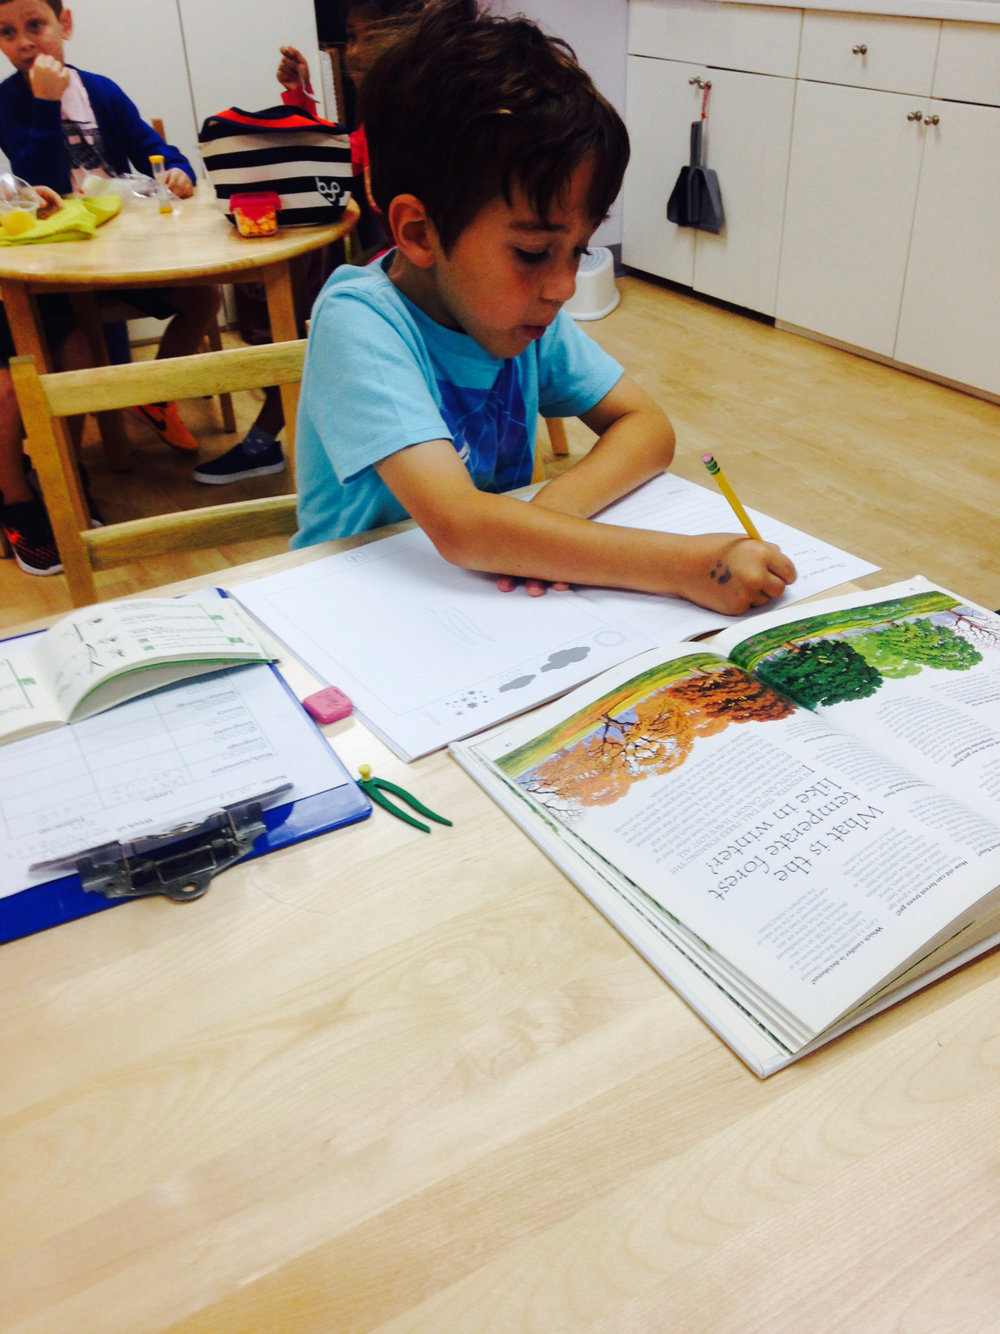 The Montessori classroom fosters independent research.  A Lower Elementary West student chose to conduct research to learn about different types of leaf shapes.